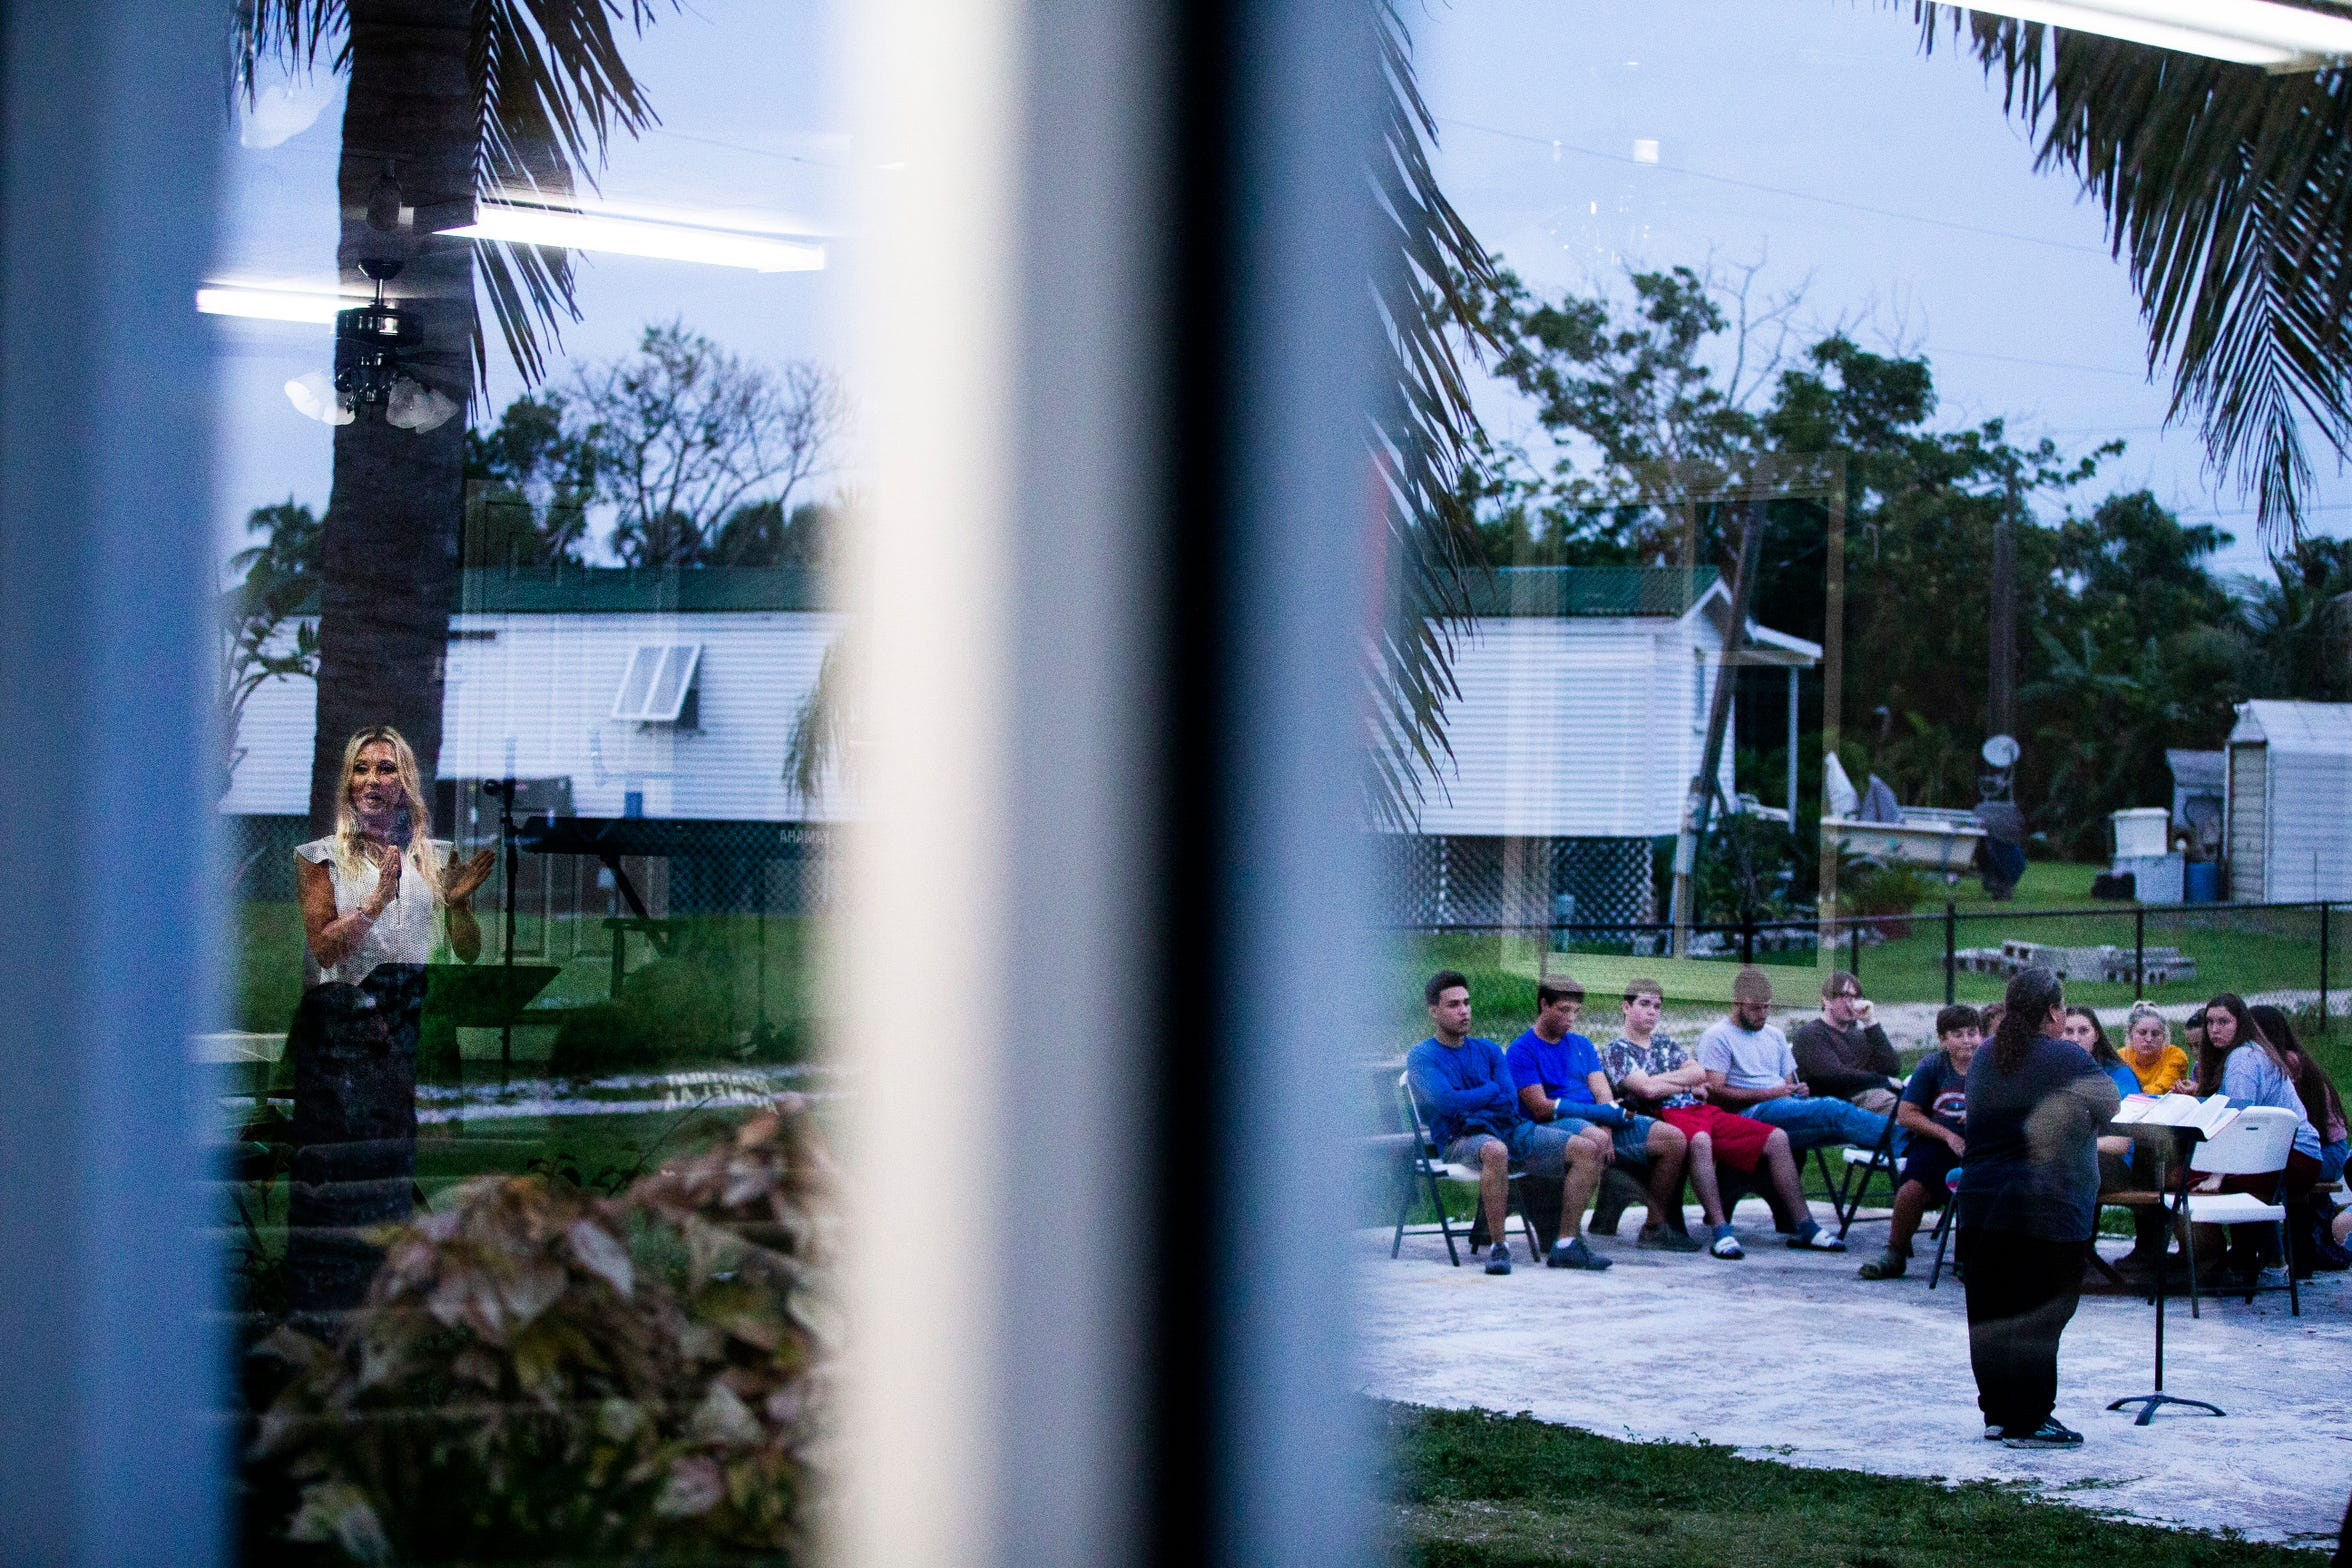 Shannon Mitchell leads the youth group service outside while the Rev. Lynnette Morris, seen reflected in the window, leads the main service inside Chokoloskee Church of God in Chokoloskee on Wednesday, Aug. 29, 2018. Although damage to the church's main building from Hurricane Irma was restored in December, they are still raising funds to rebuild the teen center, which was previously located on the concrete slab seen beneath them.